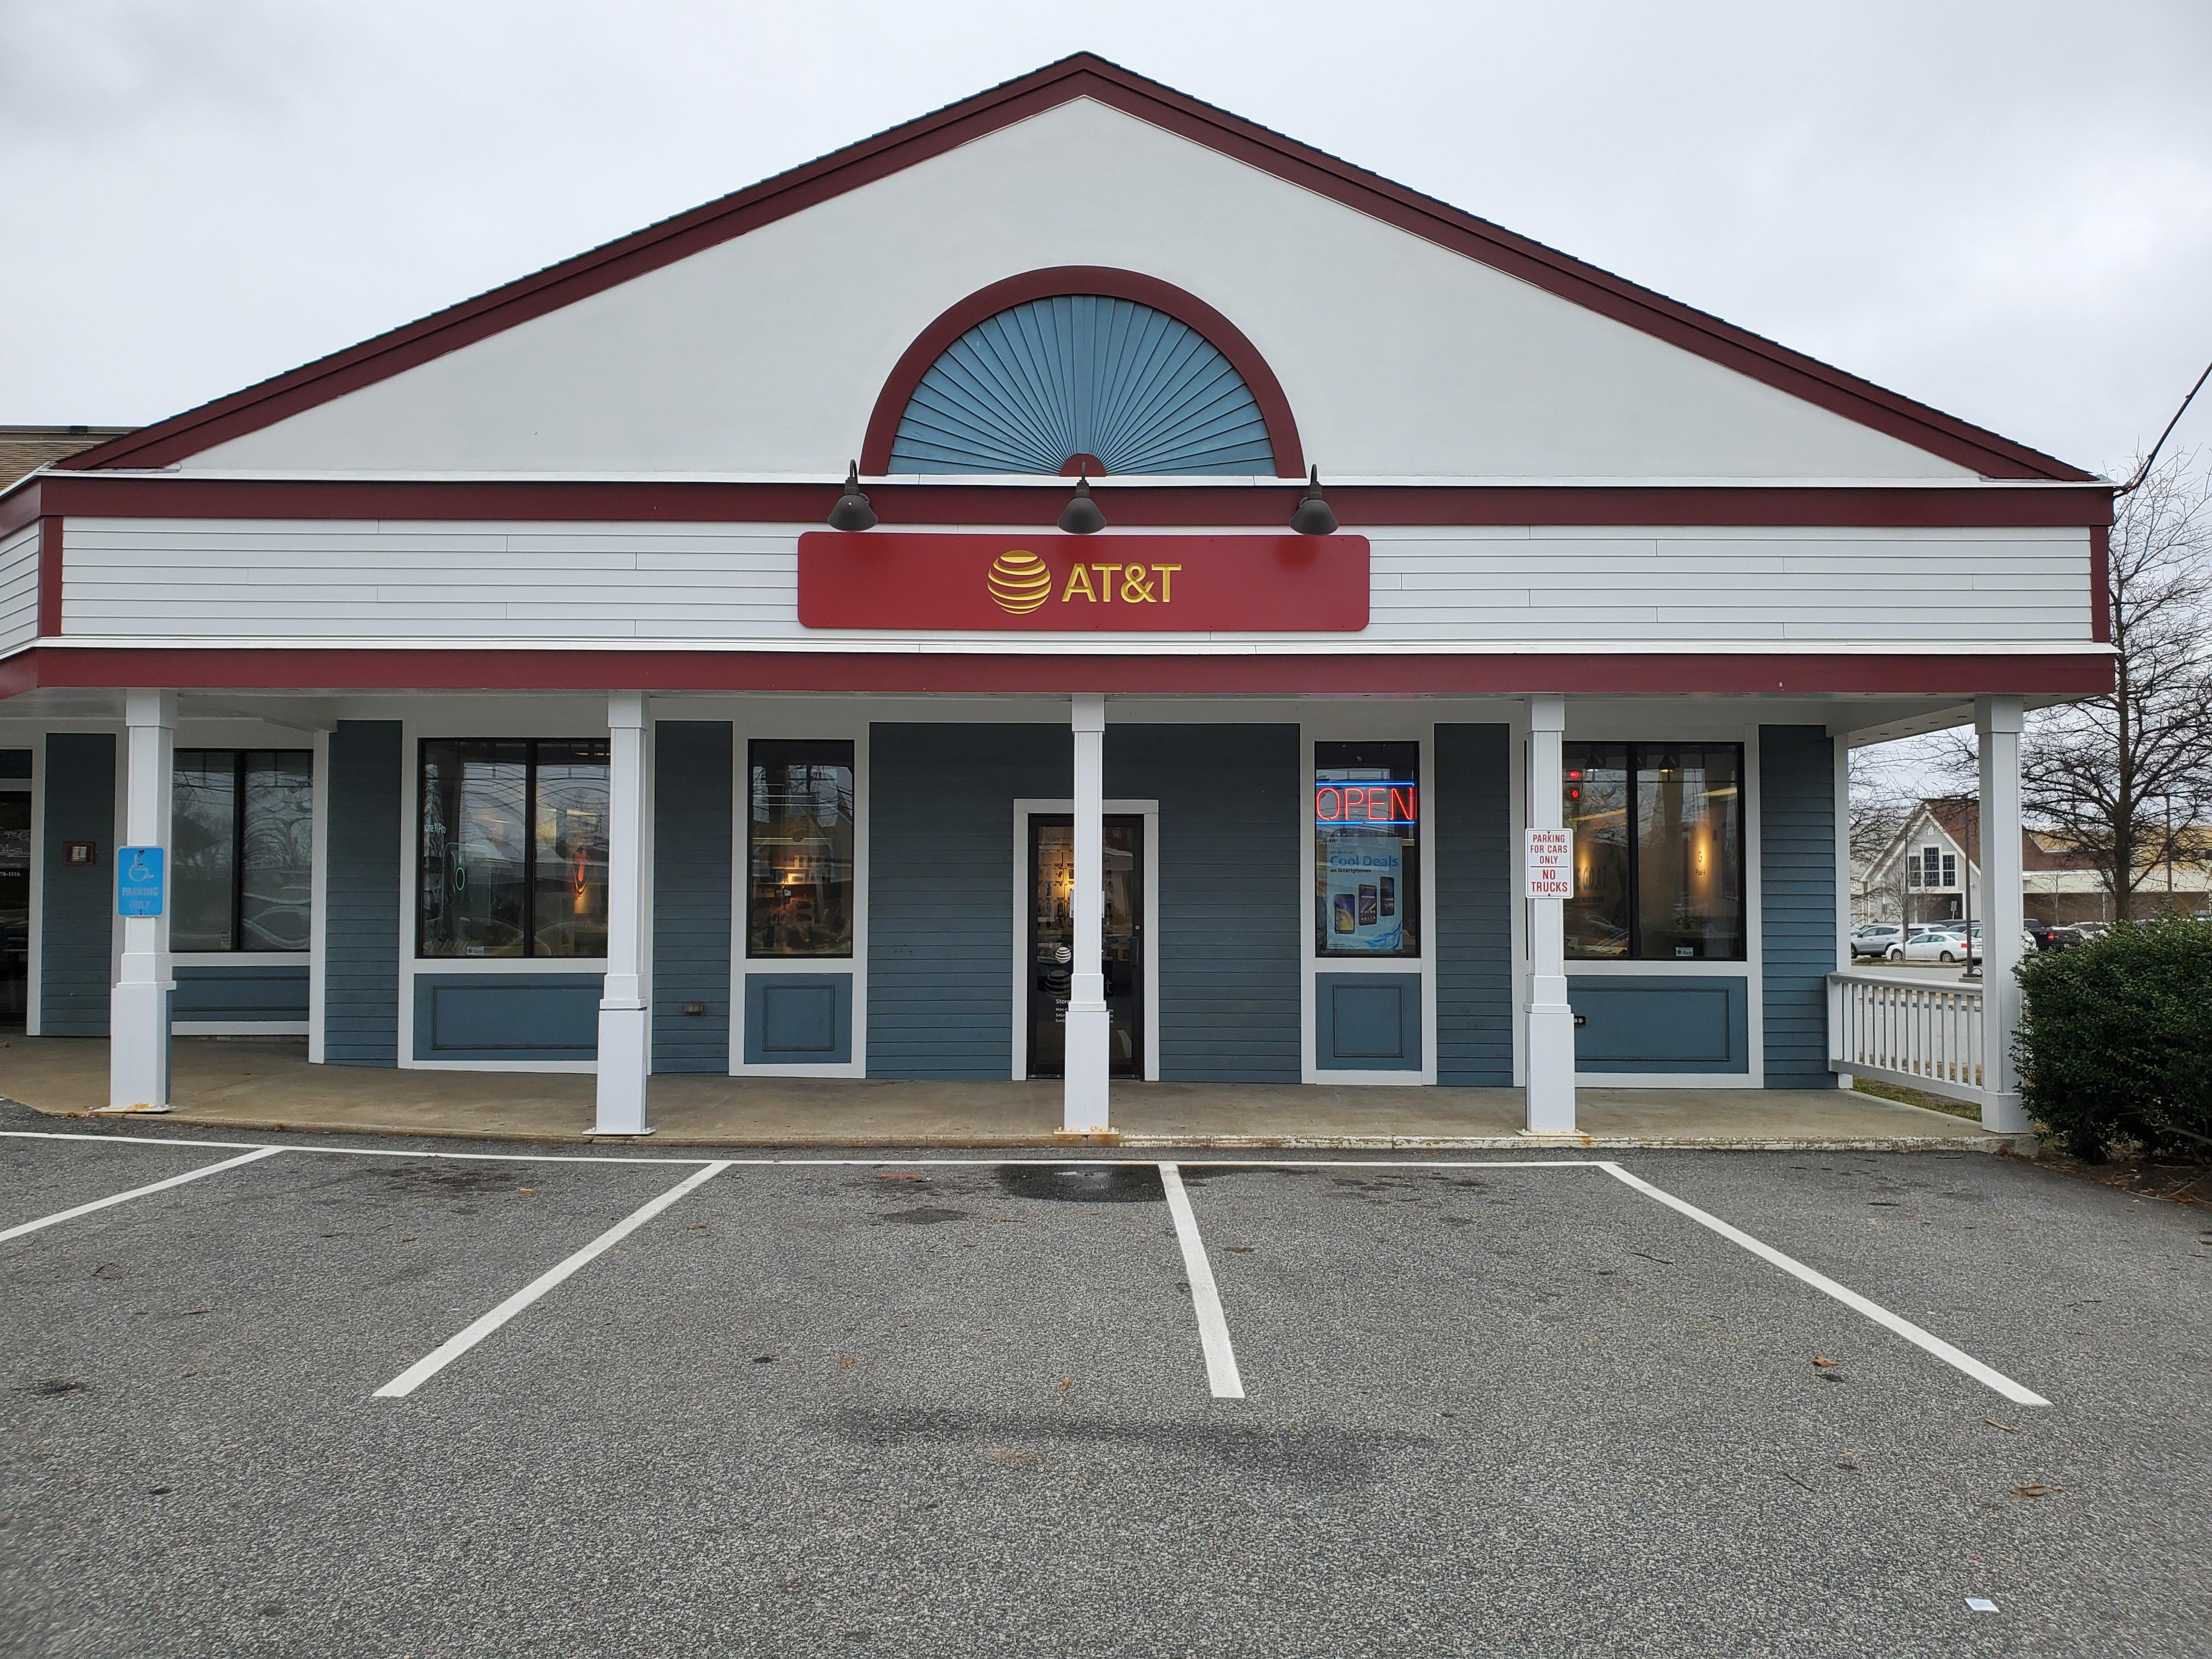 hyannis store apple iphone 12 and samsung devices hyannis ma at t hyannis store apple iphone 12 and